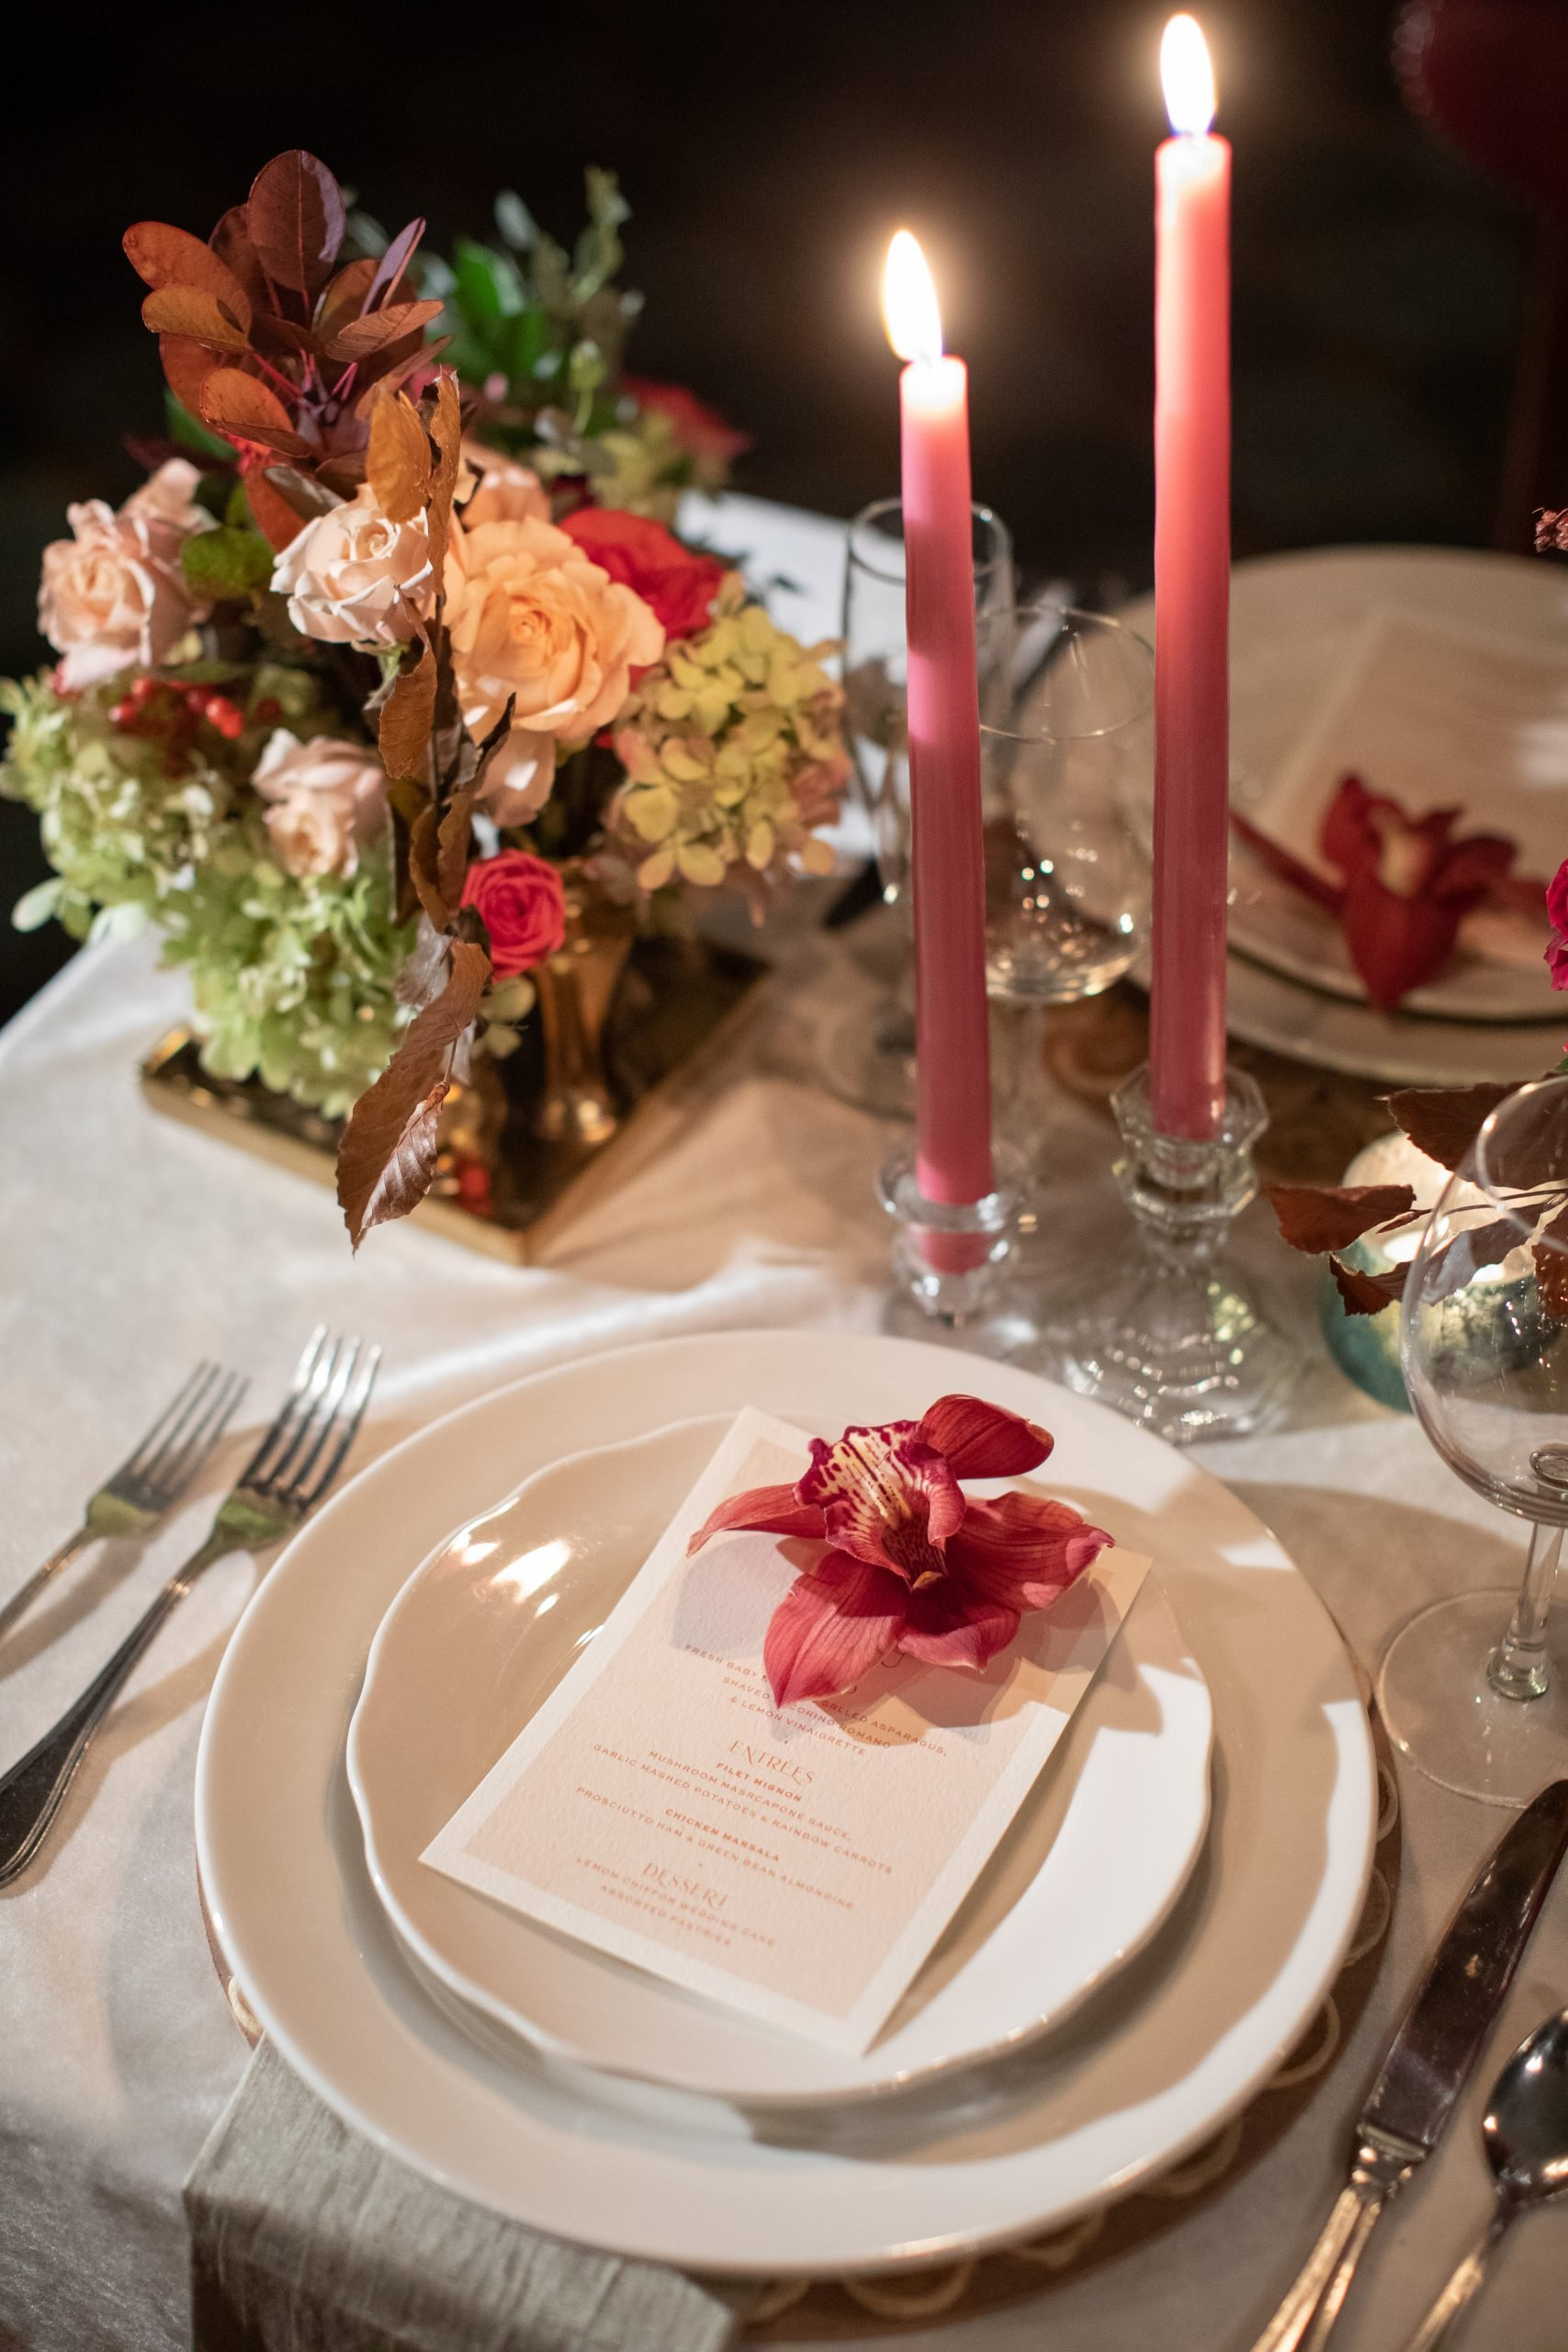 festive holiday tabletop decor